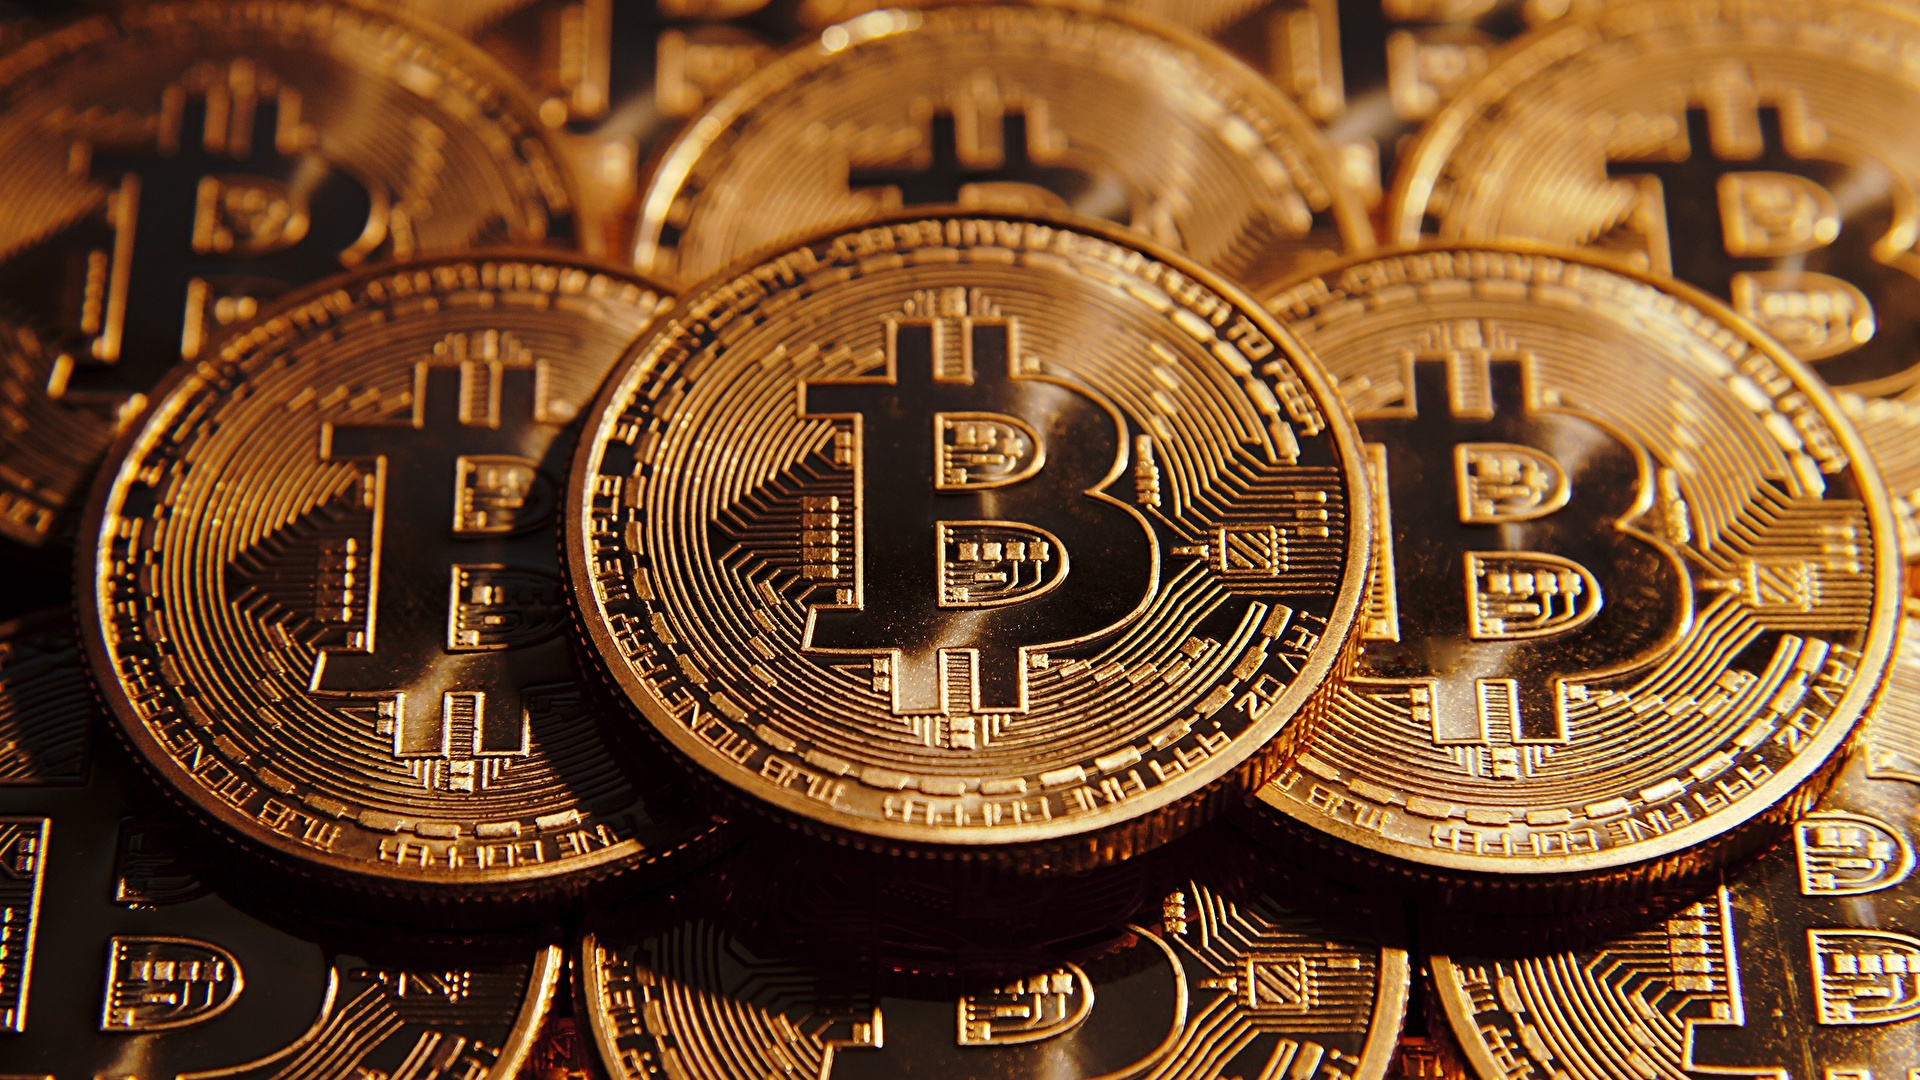 Money_Coins_Crypto-currency_Bitcoin_536533_1920x1080